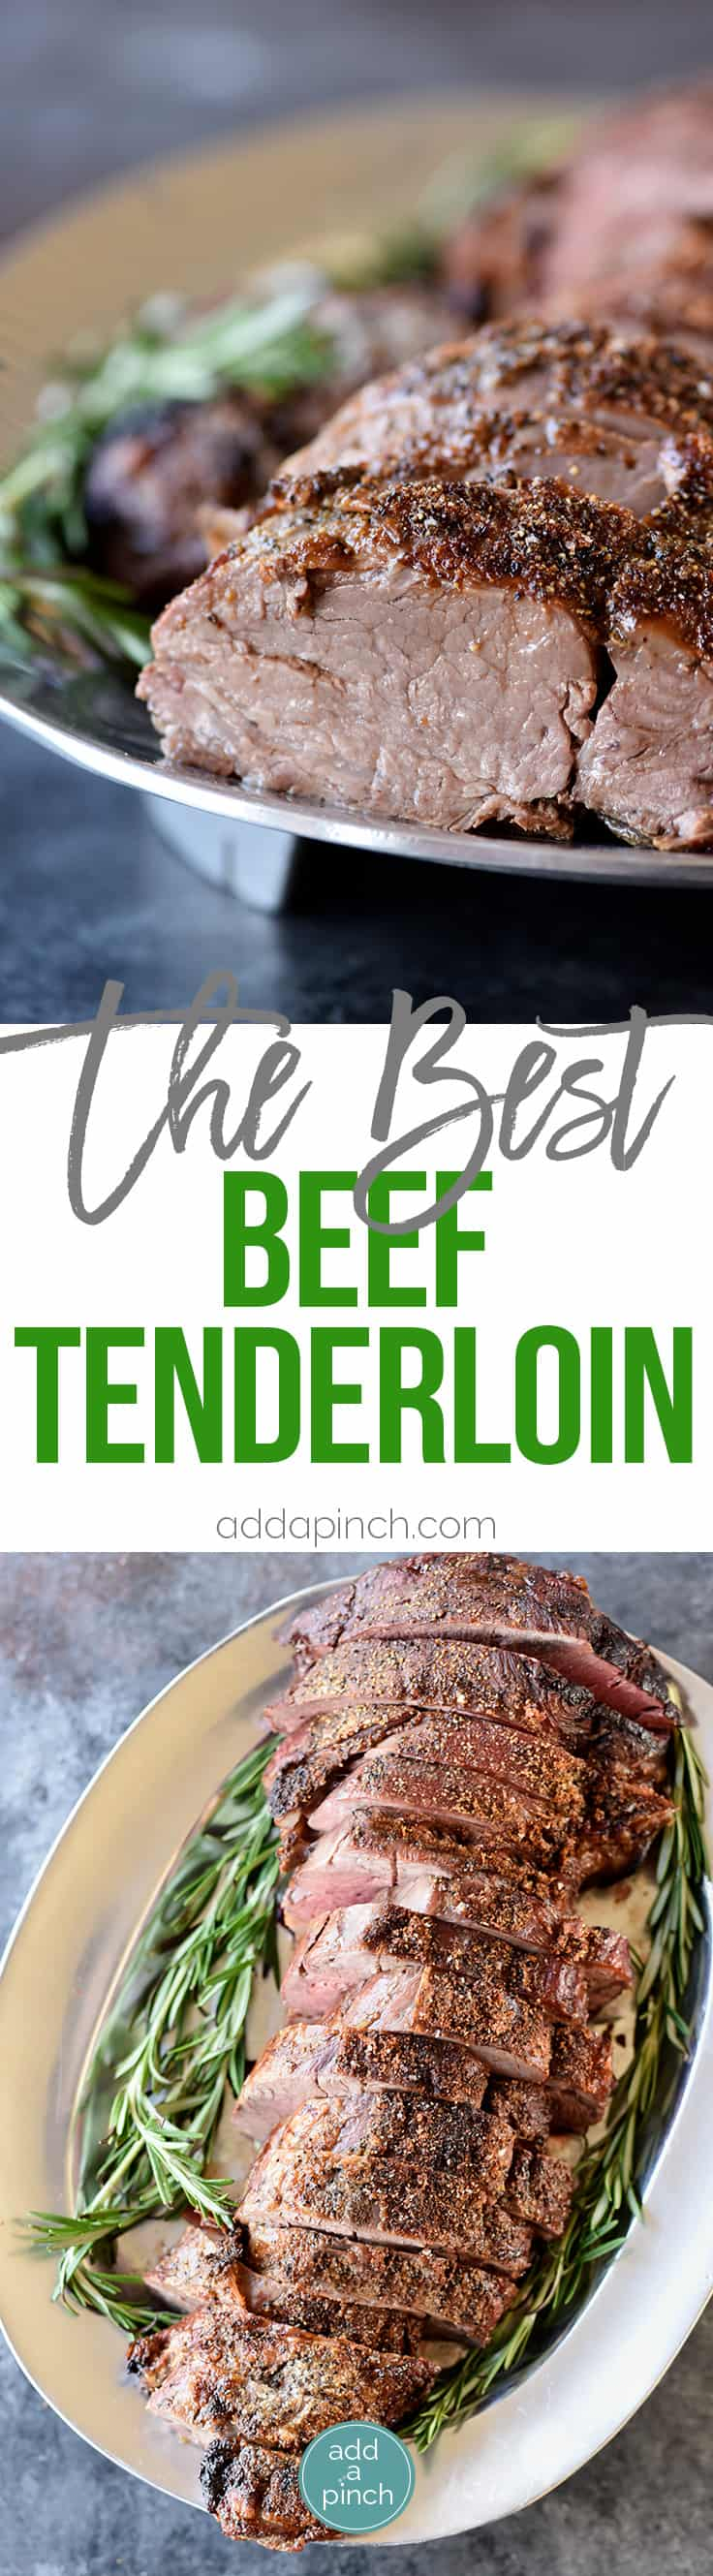 Beef Tenderloin Recipe - Beef Tenderloin makes a special meal that everyone loves. Cooked simply with just a few ingredients, this beef tenderloin recipe is sure to become a favorite. // addapinch.com